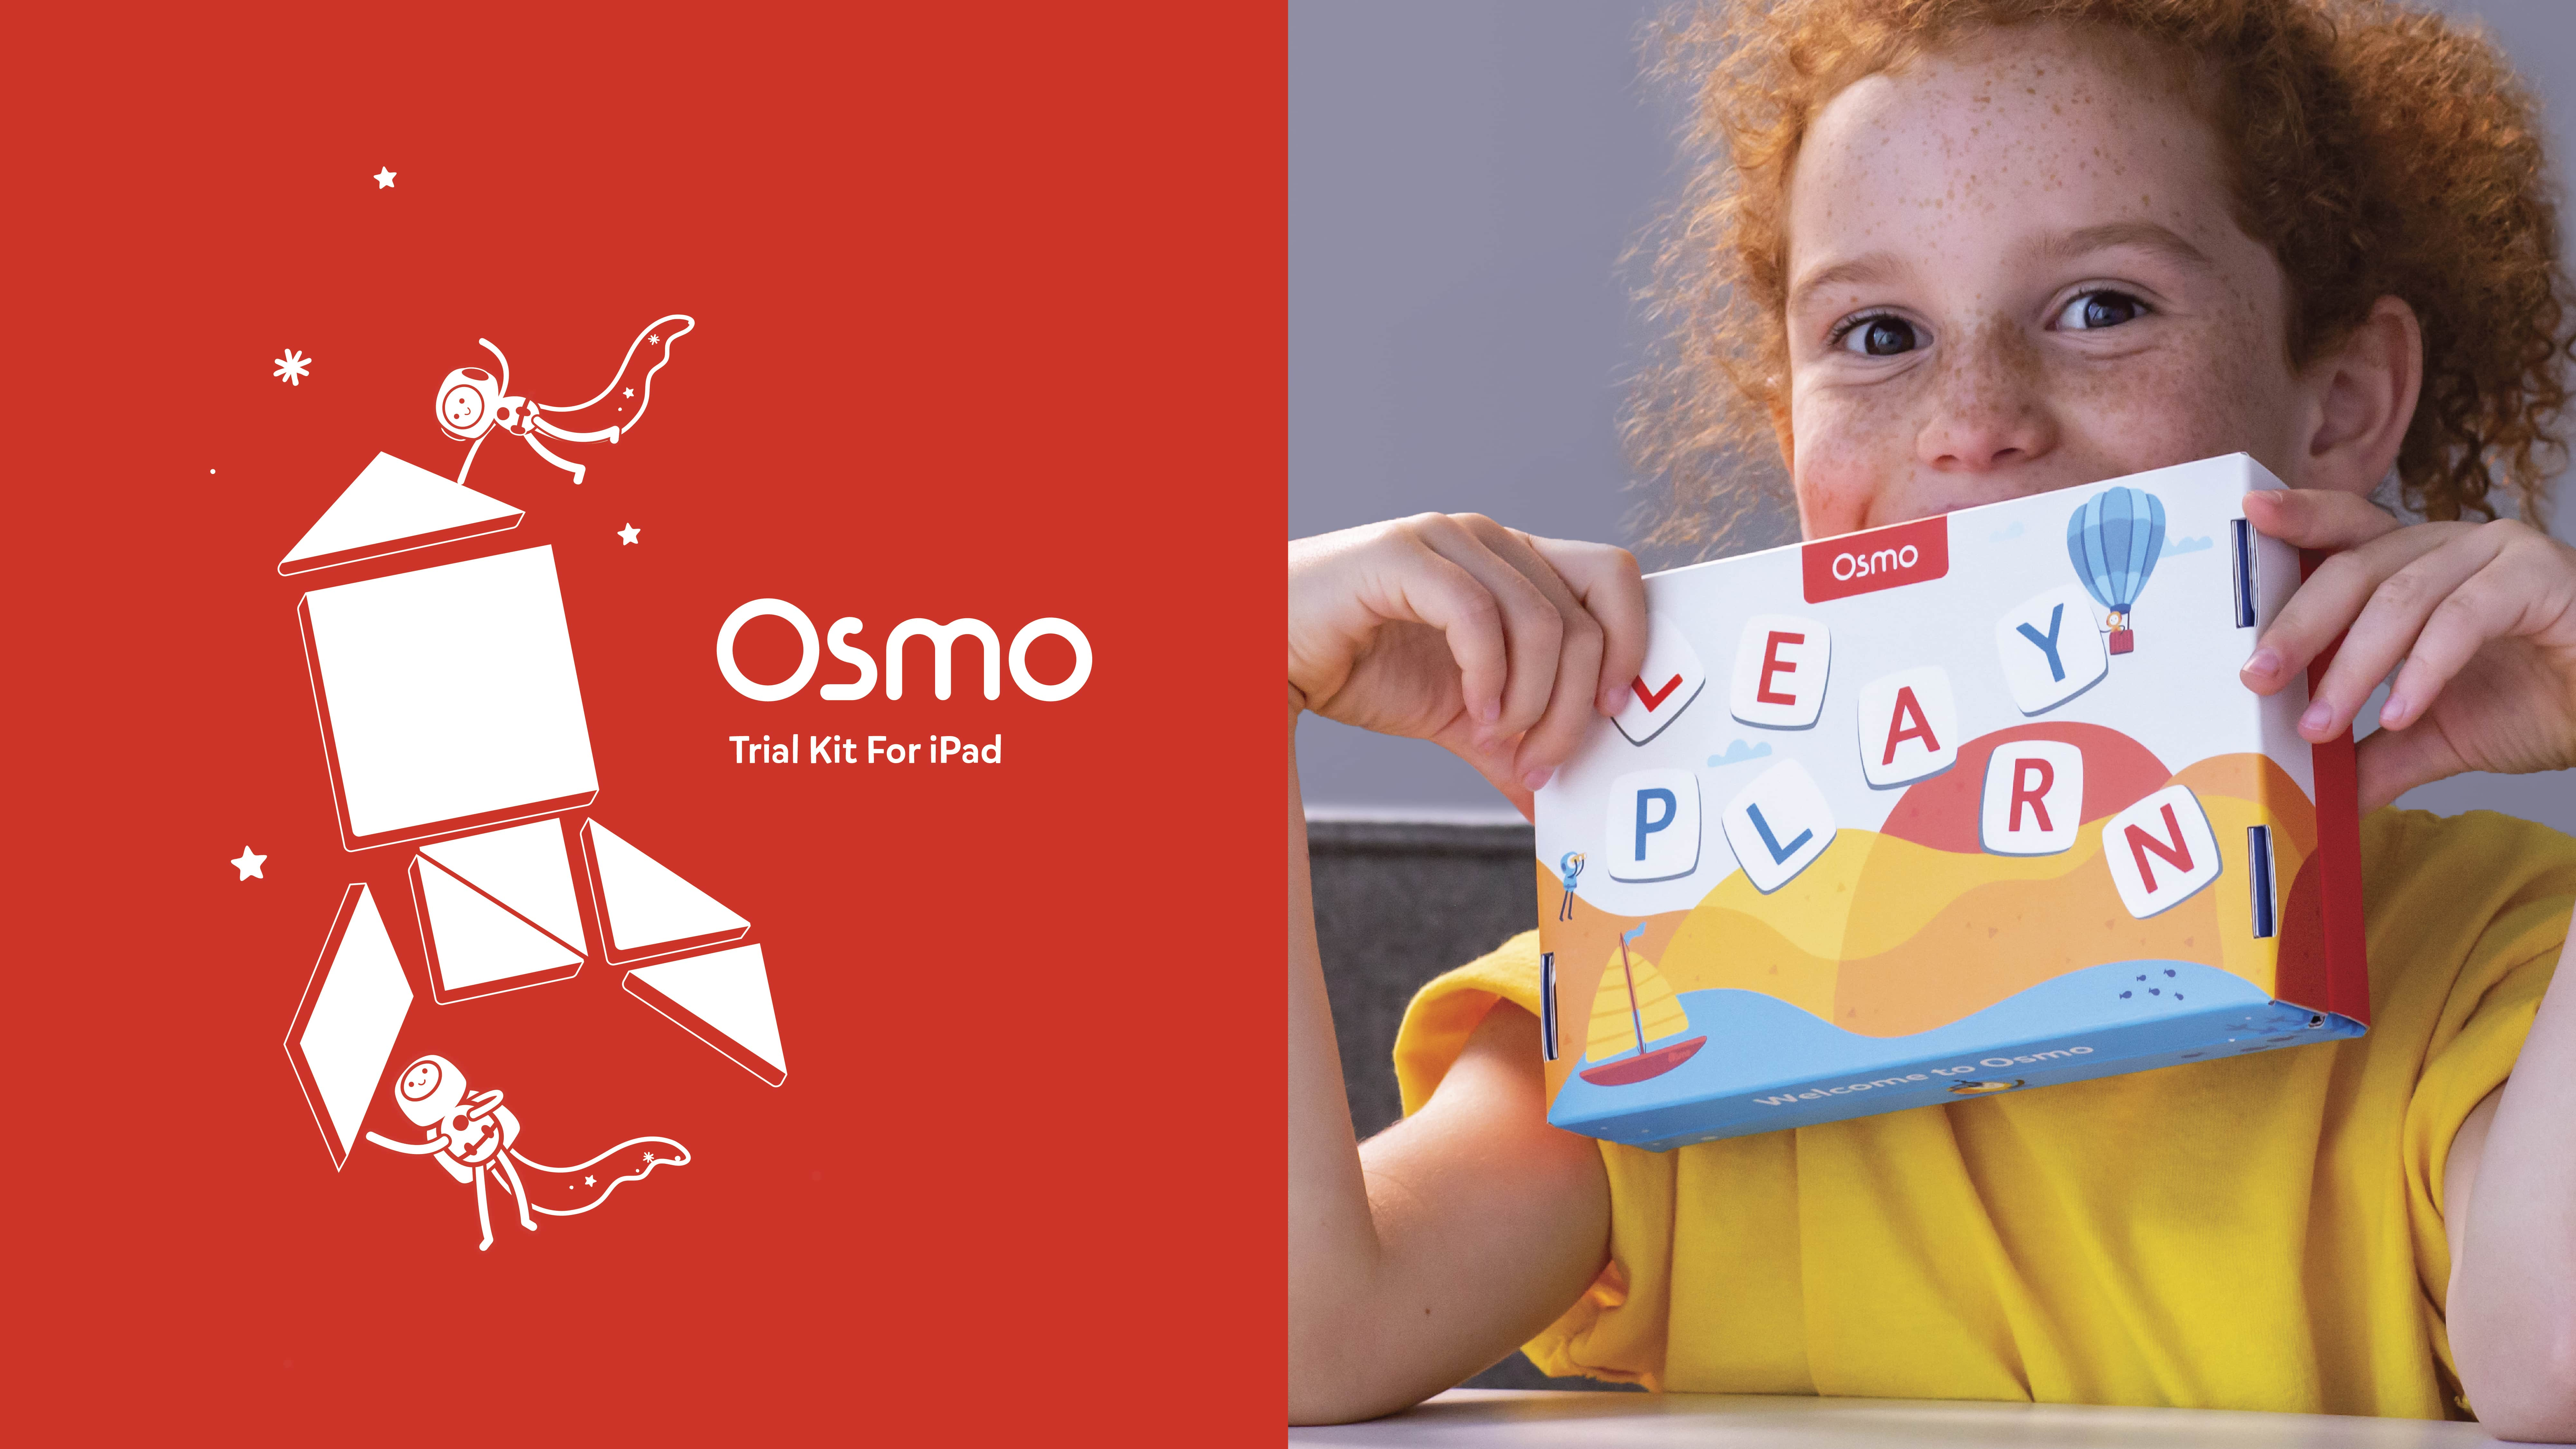 Pearlfisher Designs Osmo Kits